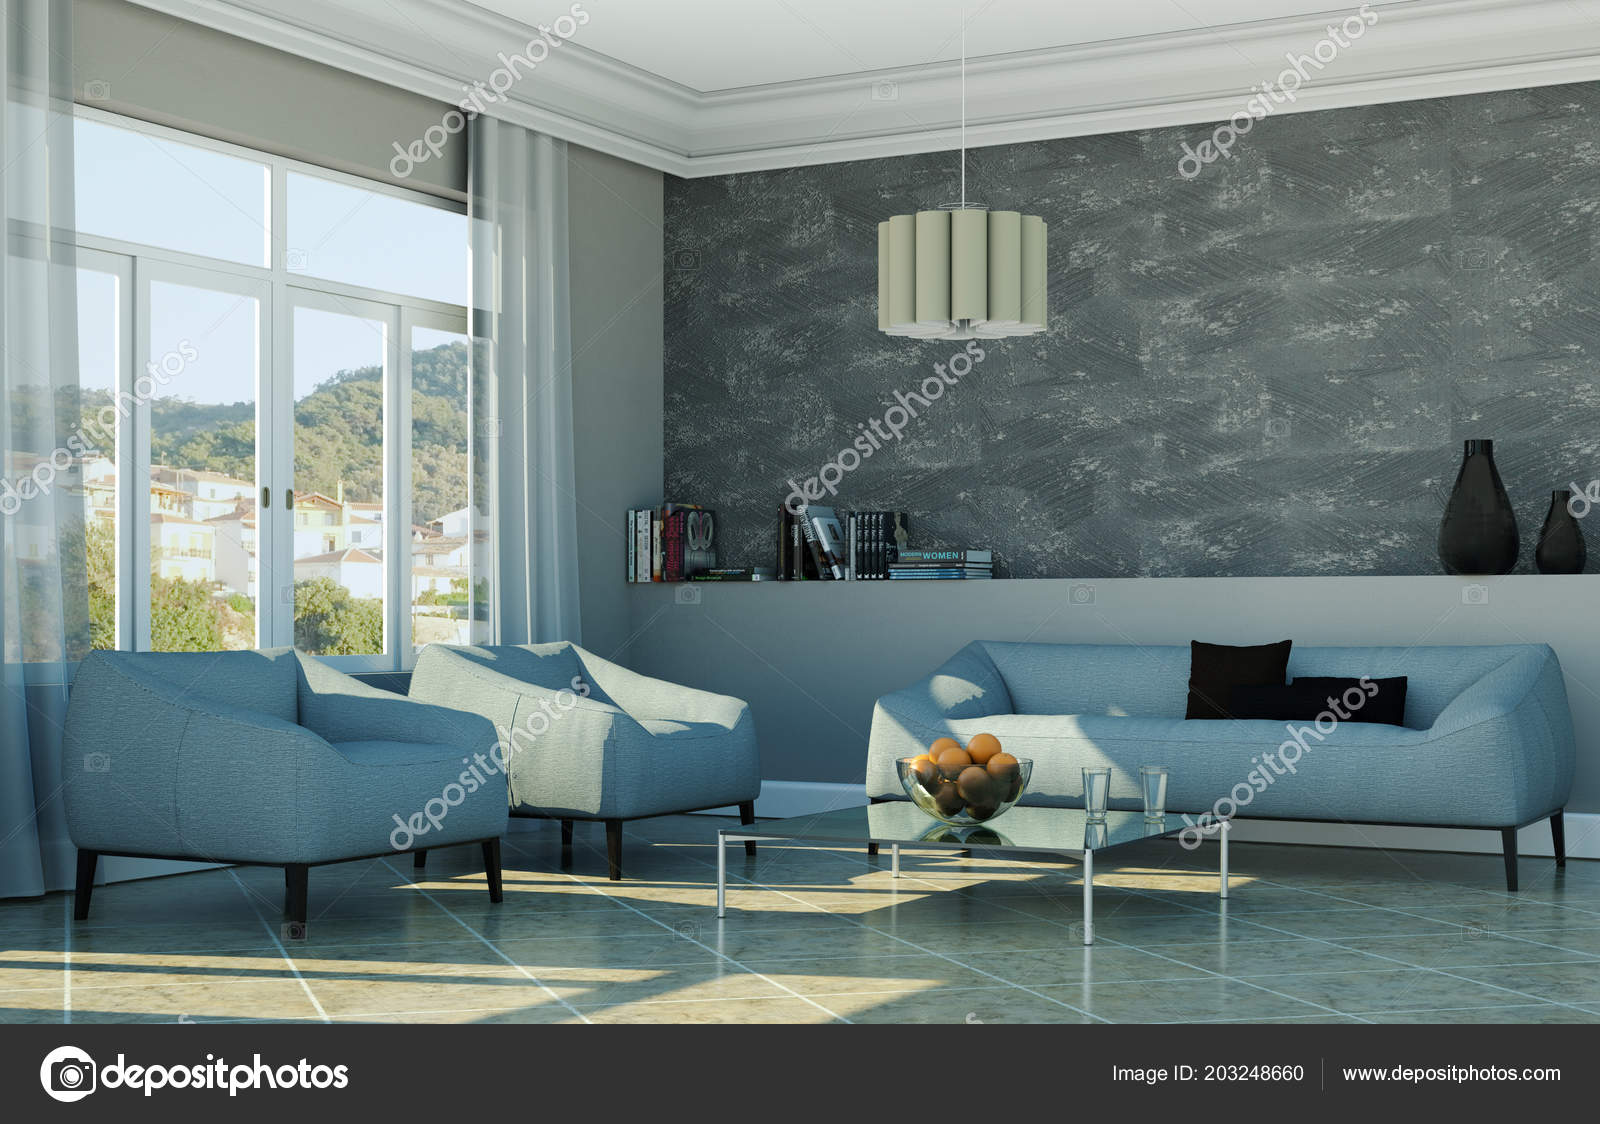 Bright Room With Grey Sofa In Front Of A Window Stock Photo